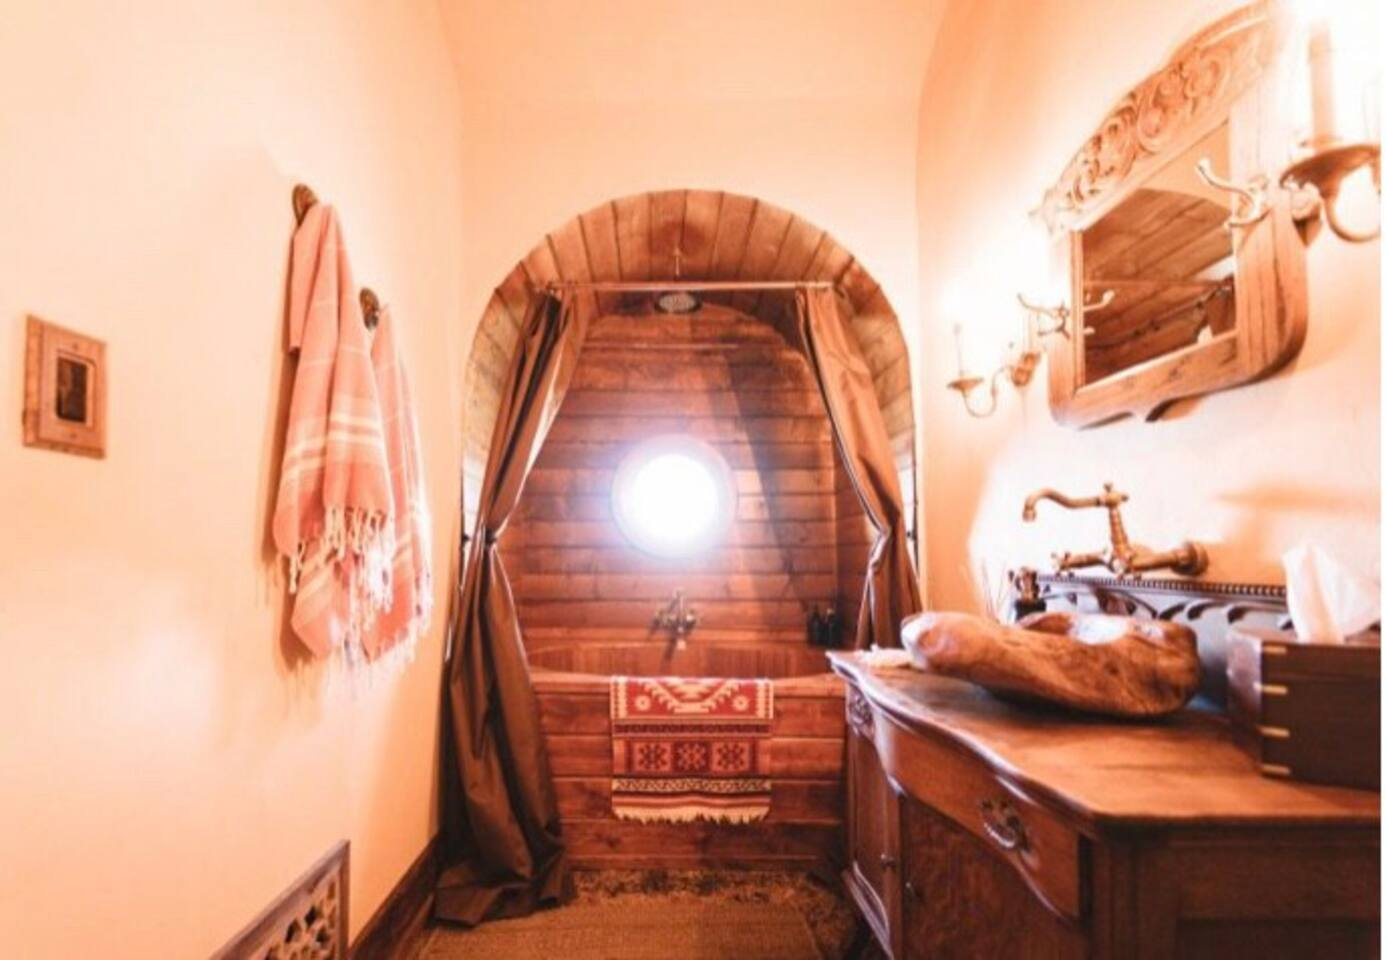 This offgrid property has a shower, tub for two, sink & toilet